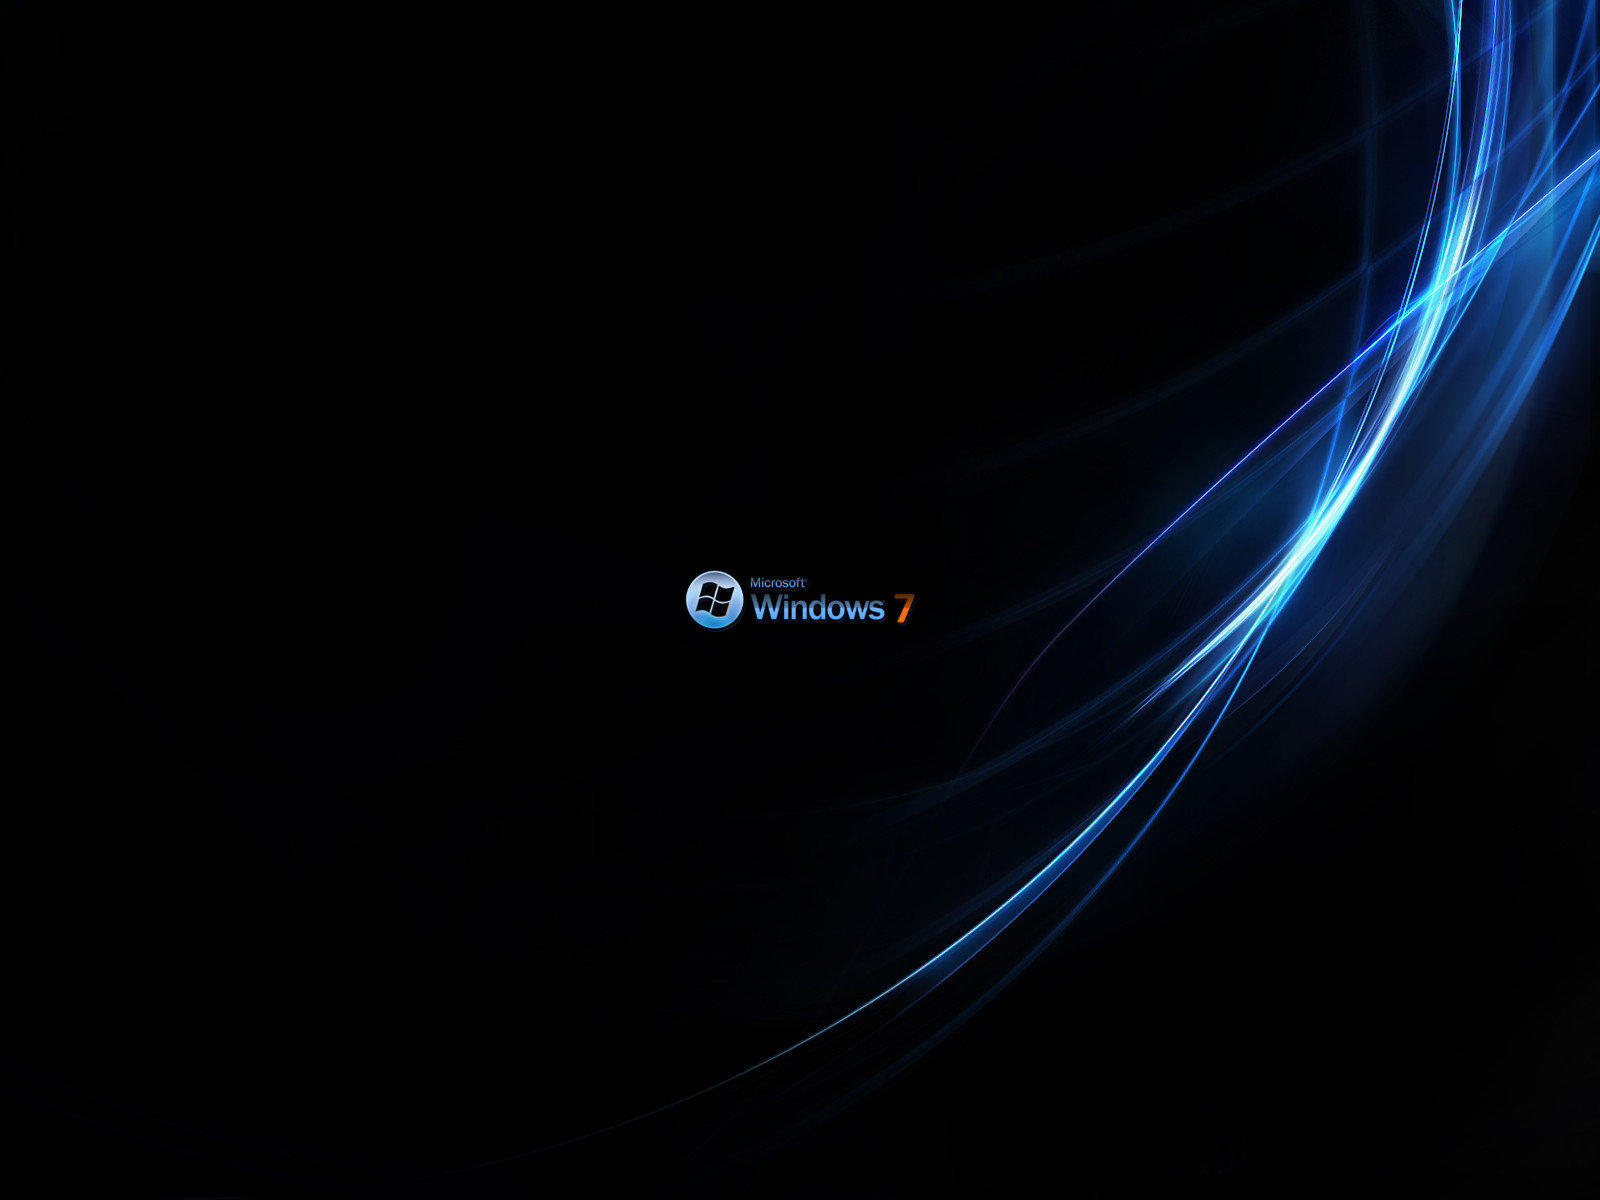 Windows 7 Wallpapers Backgrounds Hd 10